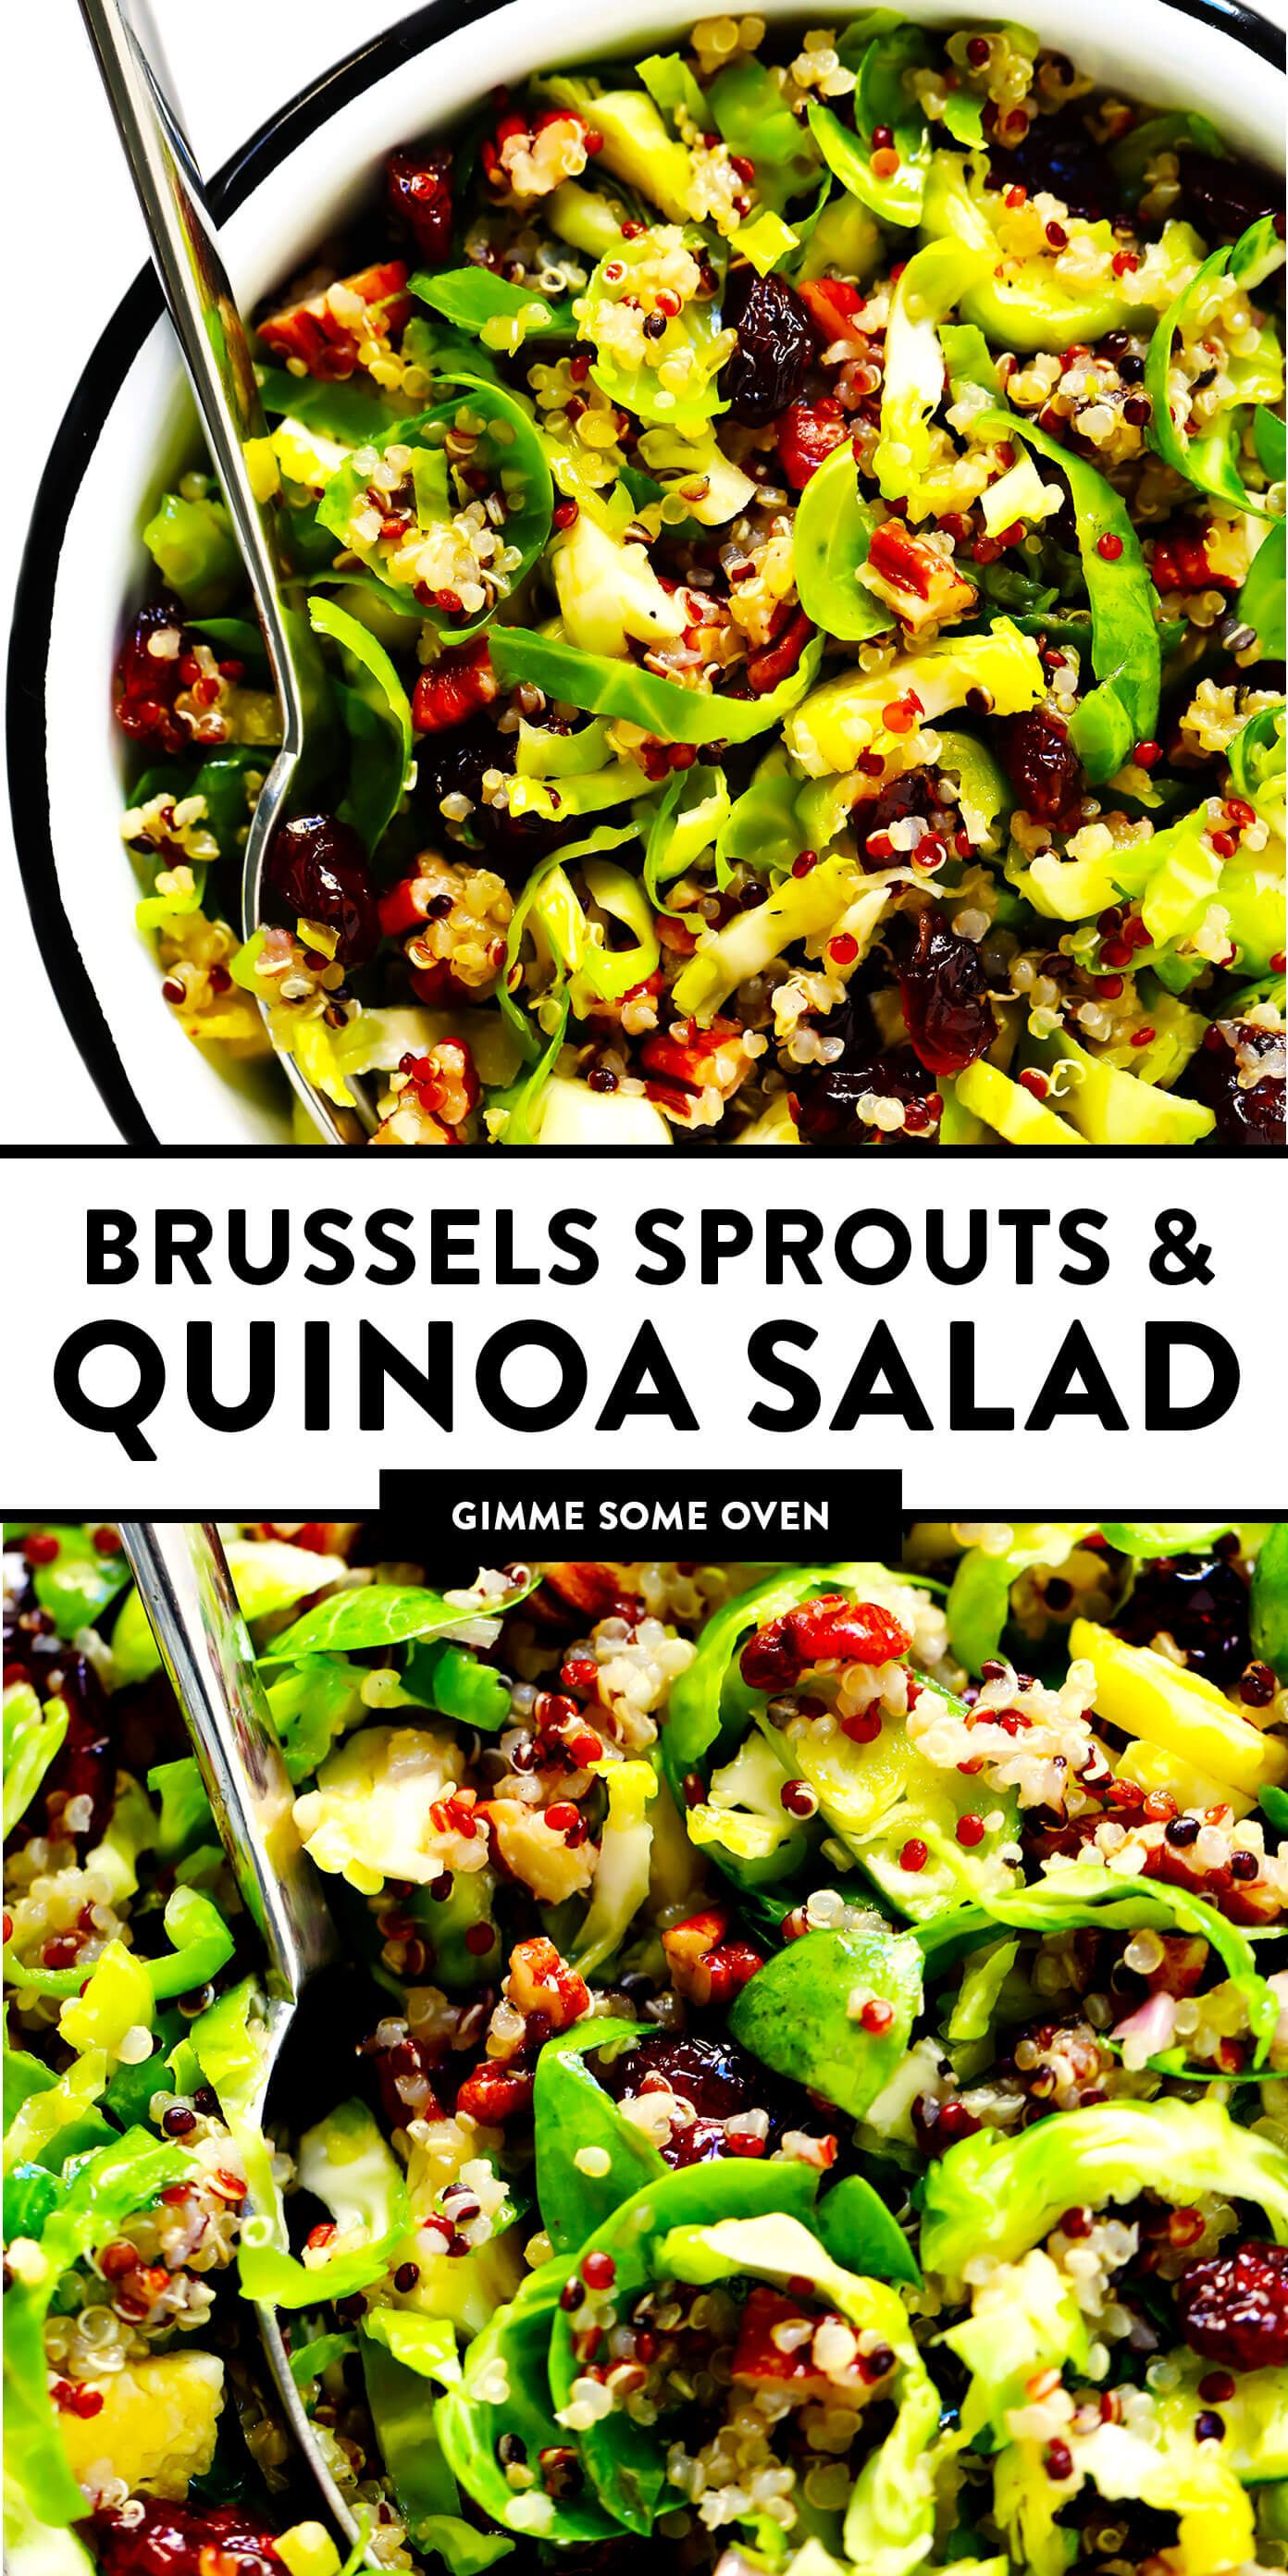 This Brussels Sprouts, Cranberry and Quinoa salad is easy to make, naturally gluten-free and vegan, tossed with a simple orange vinaigrette, and SO delicious! The perfect healthy side dish for holiday entertaining.   gimmesomeoven.com #salad #brussels #healthy #glutenfree #vegetarian #vegan #mealprep #makeahead #thanksgiving #christmas